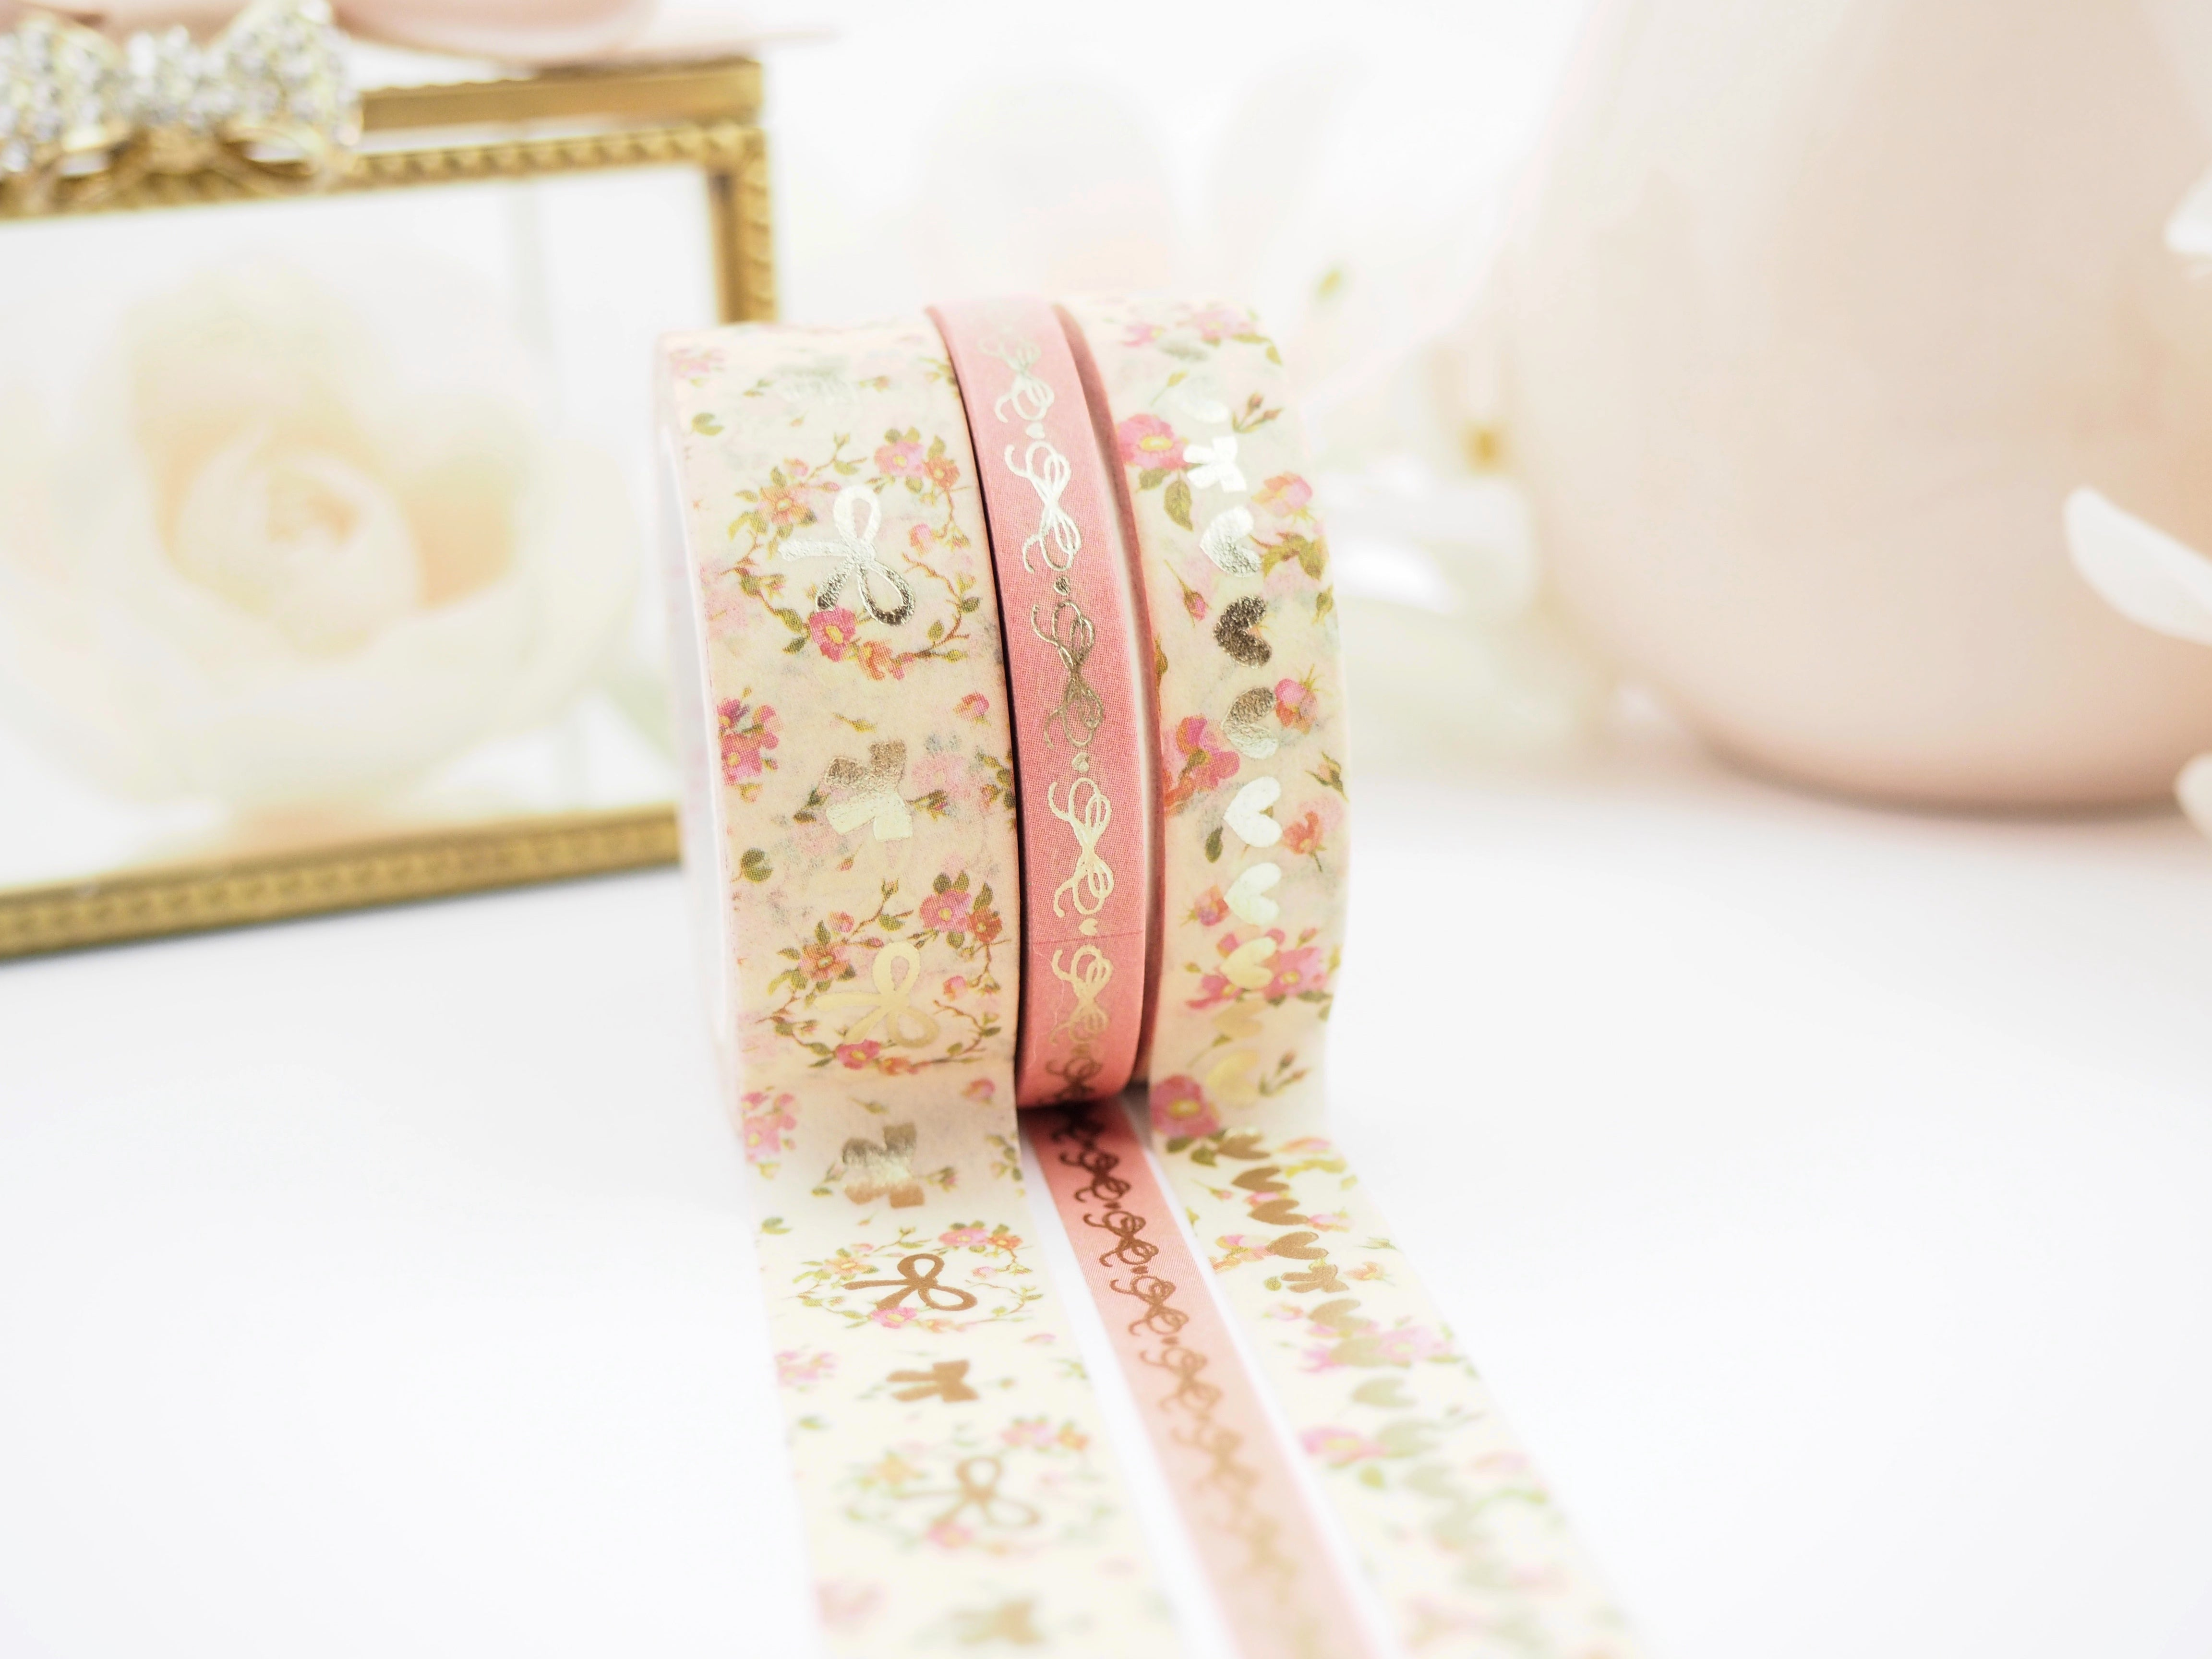 HOPE 2.0 Washi Collection - The Pink Room Co Exclusive Original